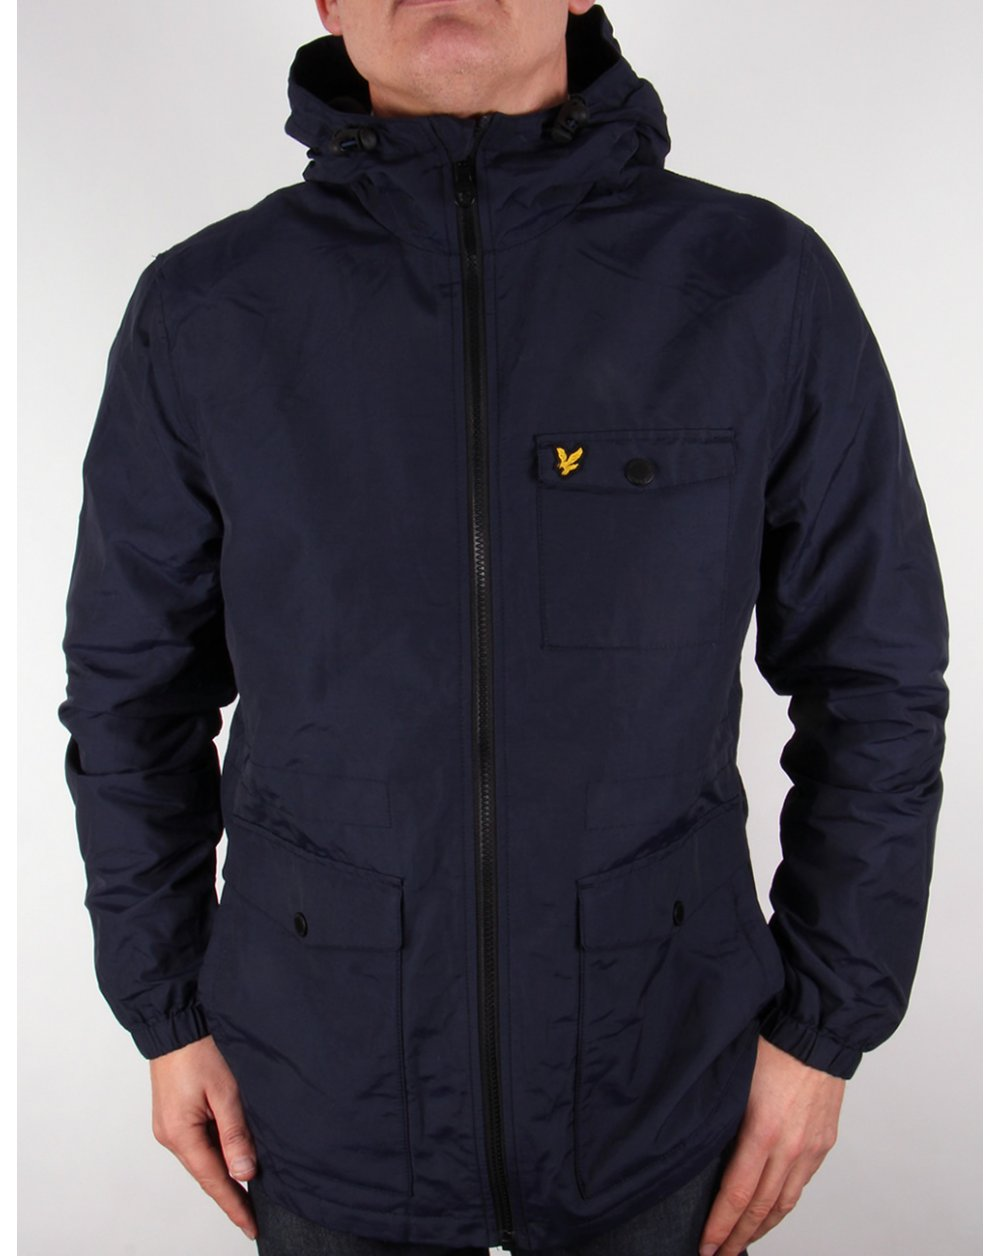 lyle and scott microfleece lined jacket navy parka coat mens. Black Bedroom Furniture Sets. Home Design Ideas